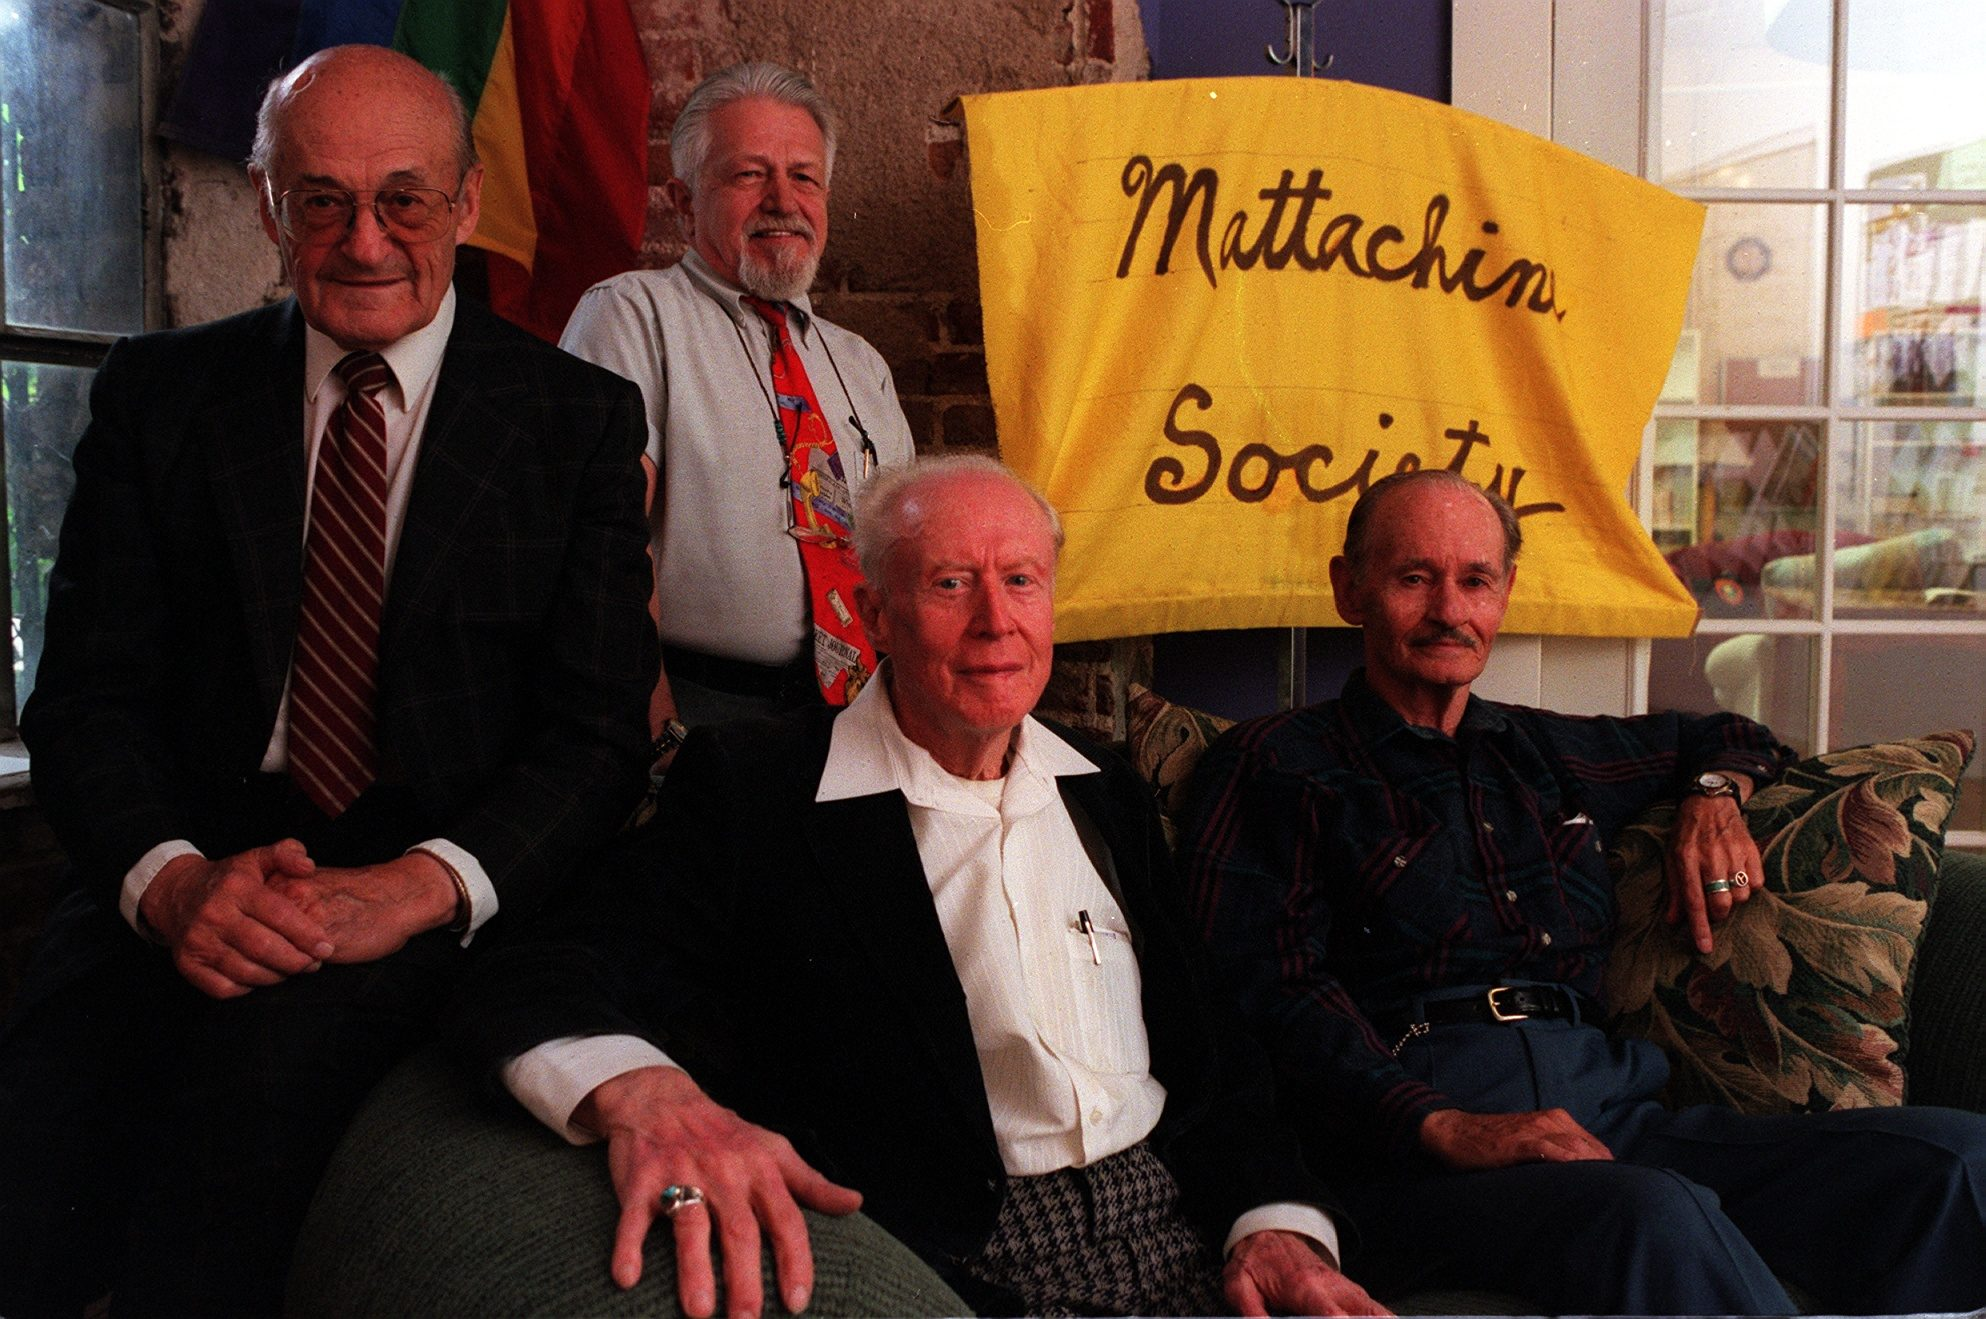 Mattachine Society members clockwise from left, Bill Reynard , Earl Gebhardt, Rolland Karcher and Elver Barker will be grand marshals for this year's Gay Pride Parade on June 27.